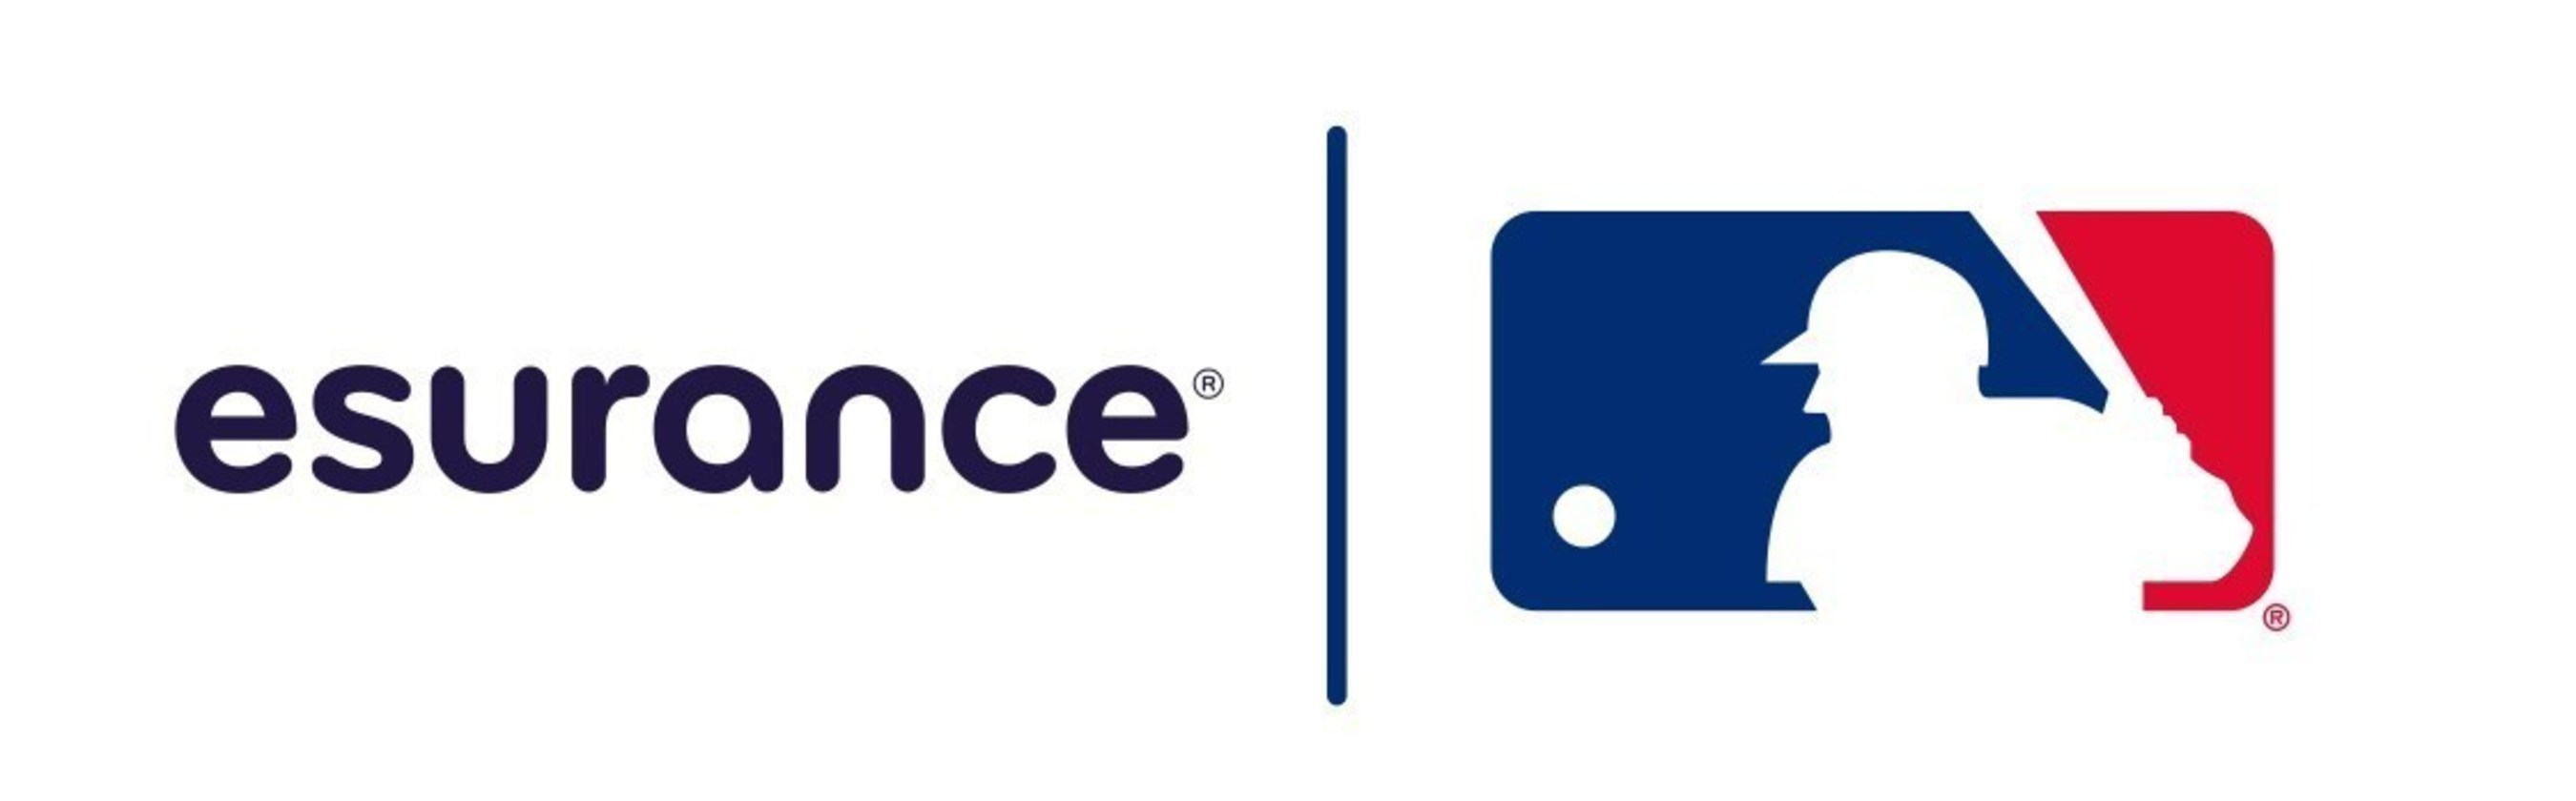 Esurance and Major League Baseball Partnership